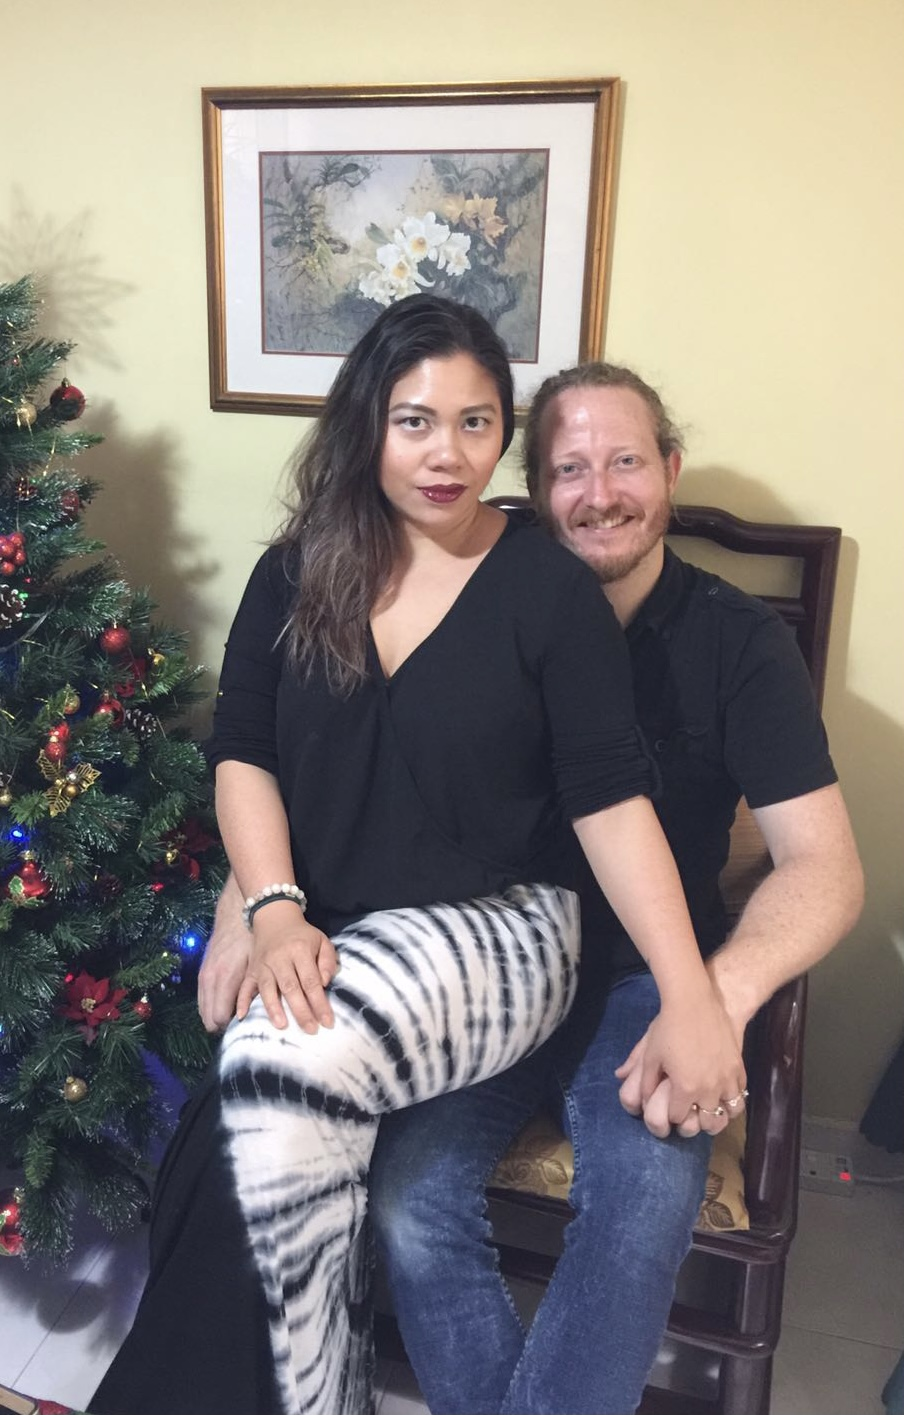 My husband and I have been together since we were 19.